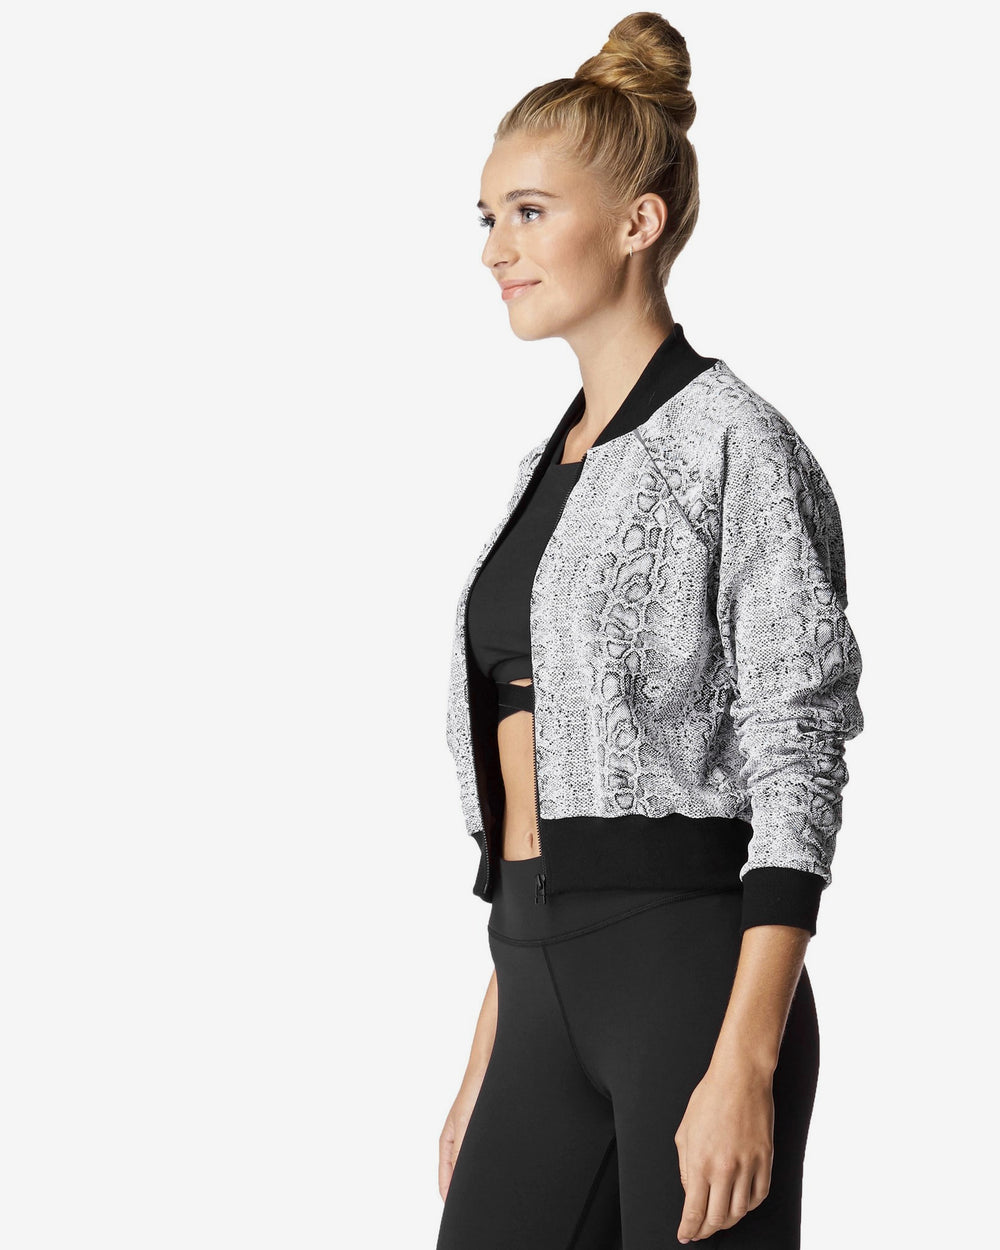 Flash Jacket - Black White Python